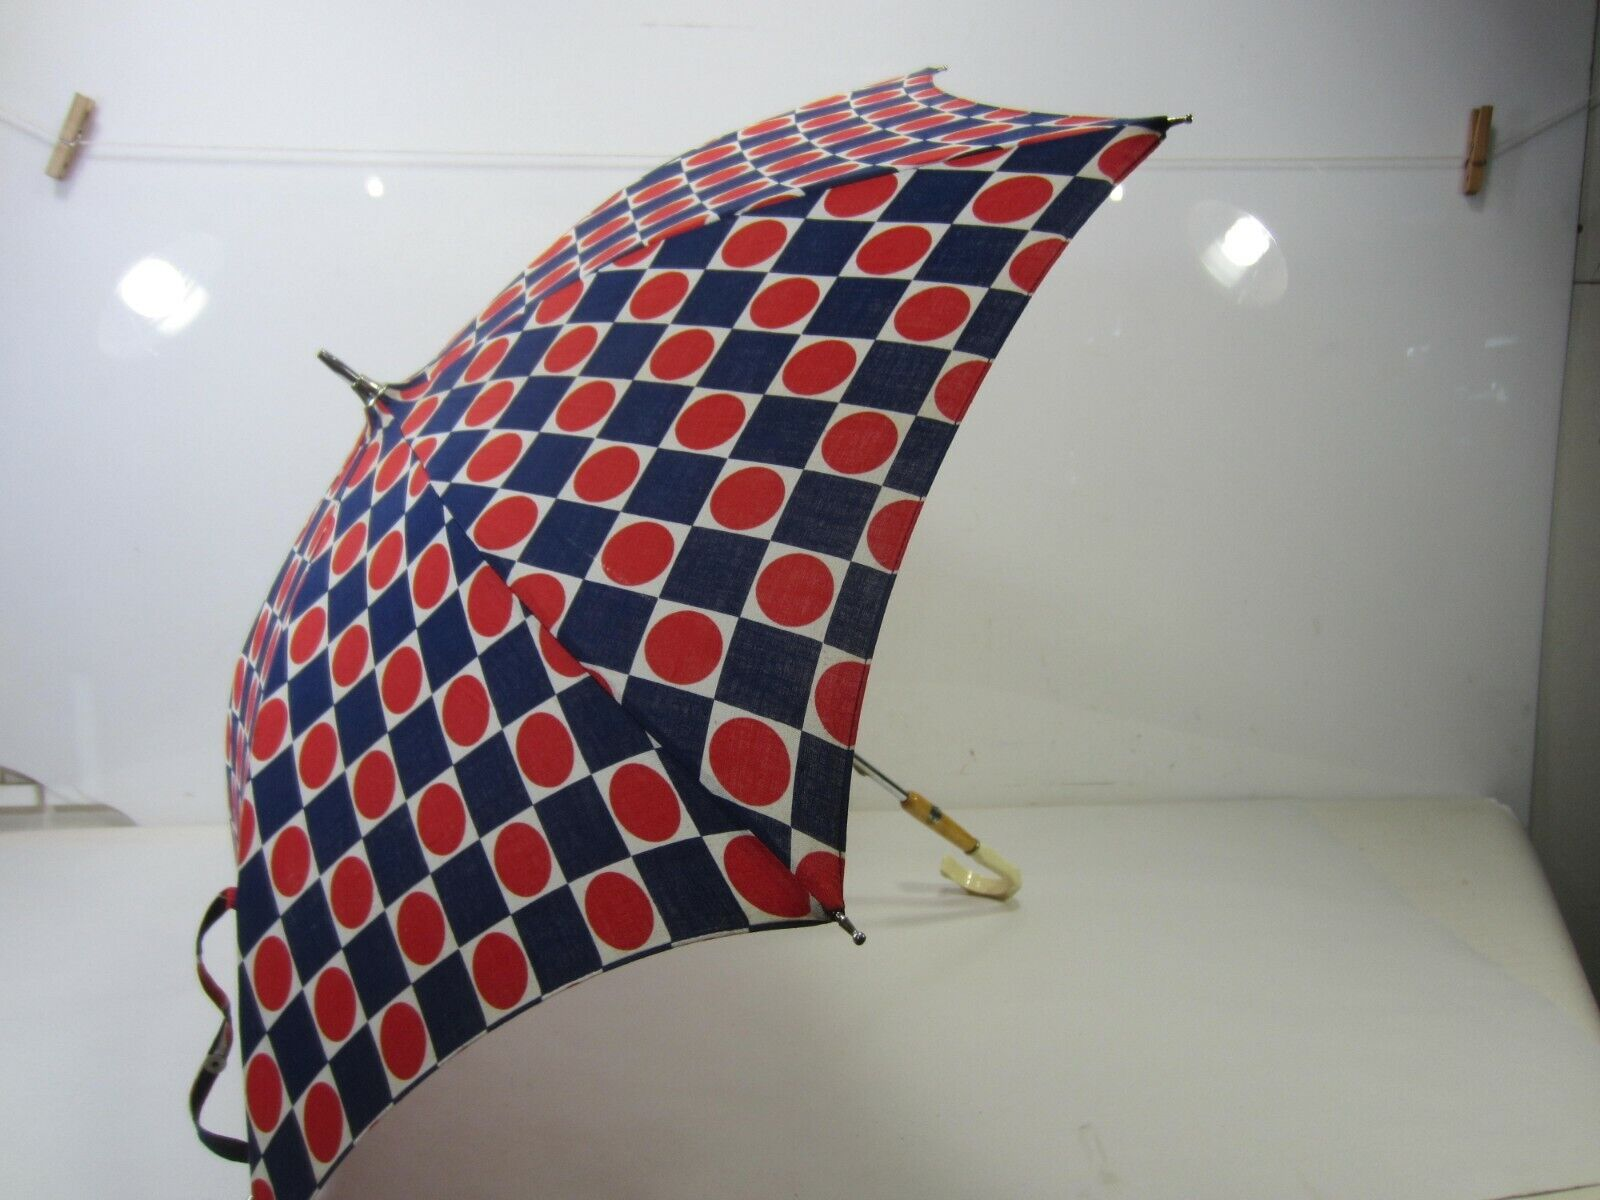 Vintage Made in Italy Blue & Red Polka Dot Cloth Parasol